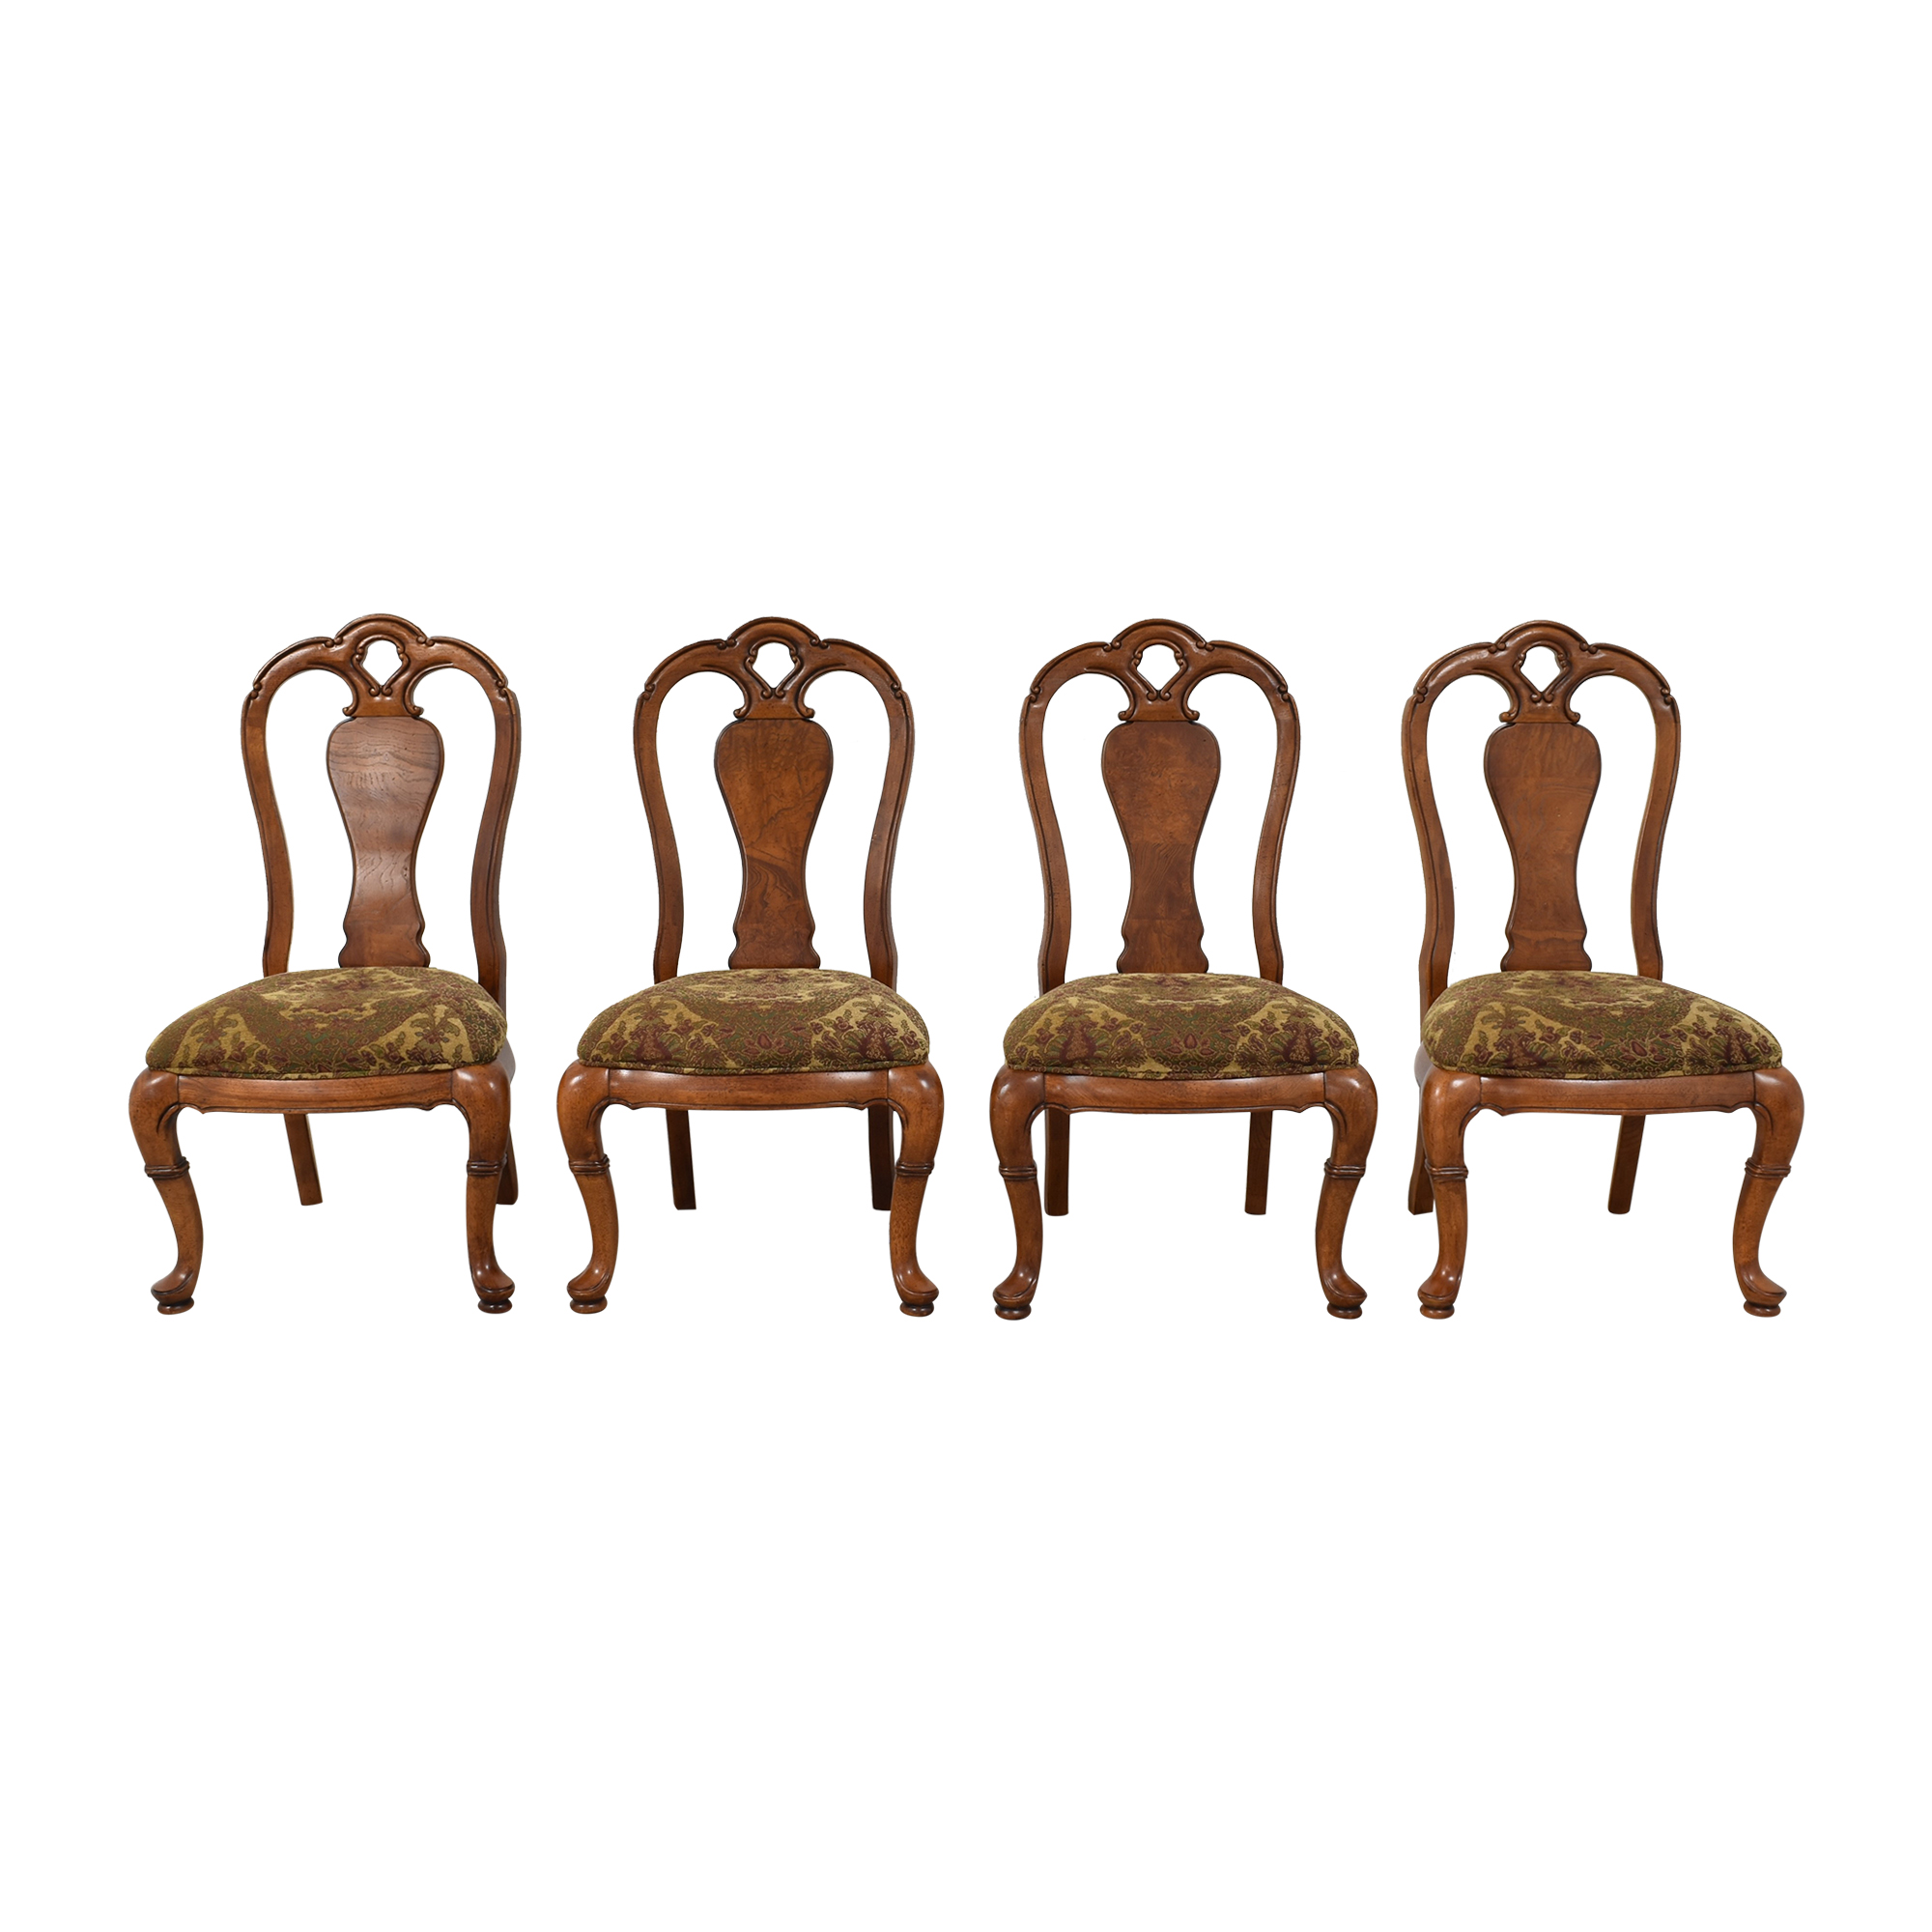 Thomasville Thomasville Queen Anne Dining Side Chairs used